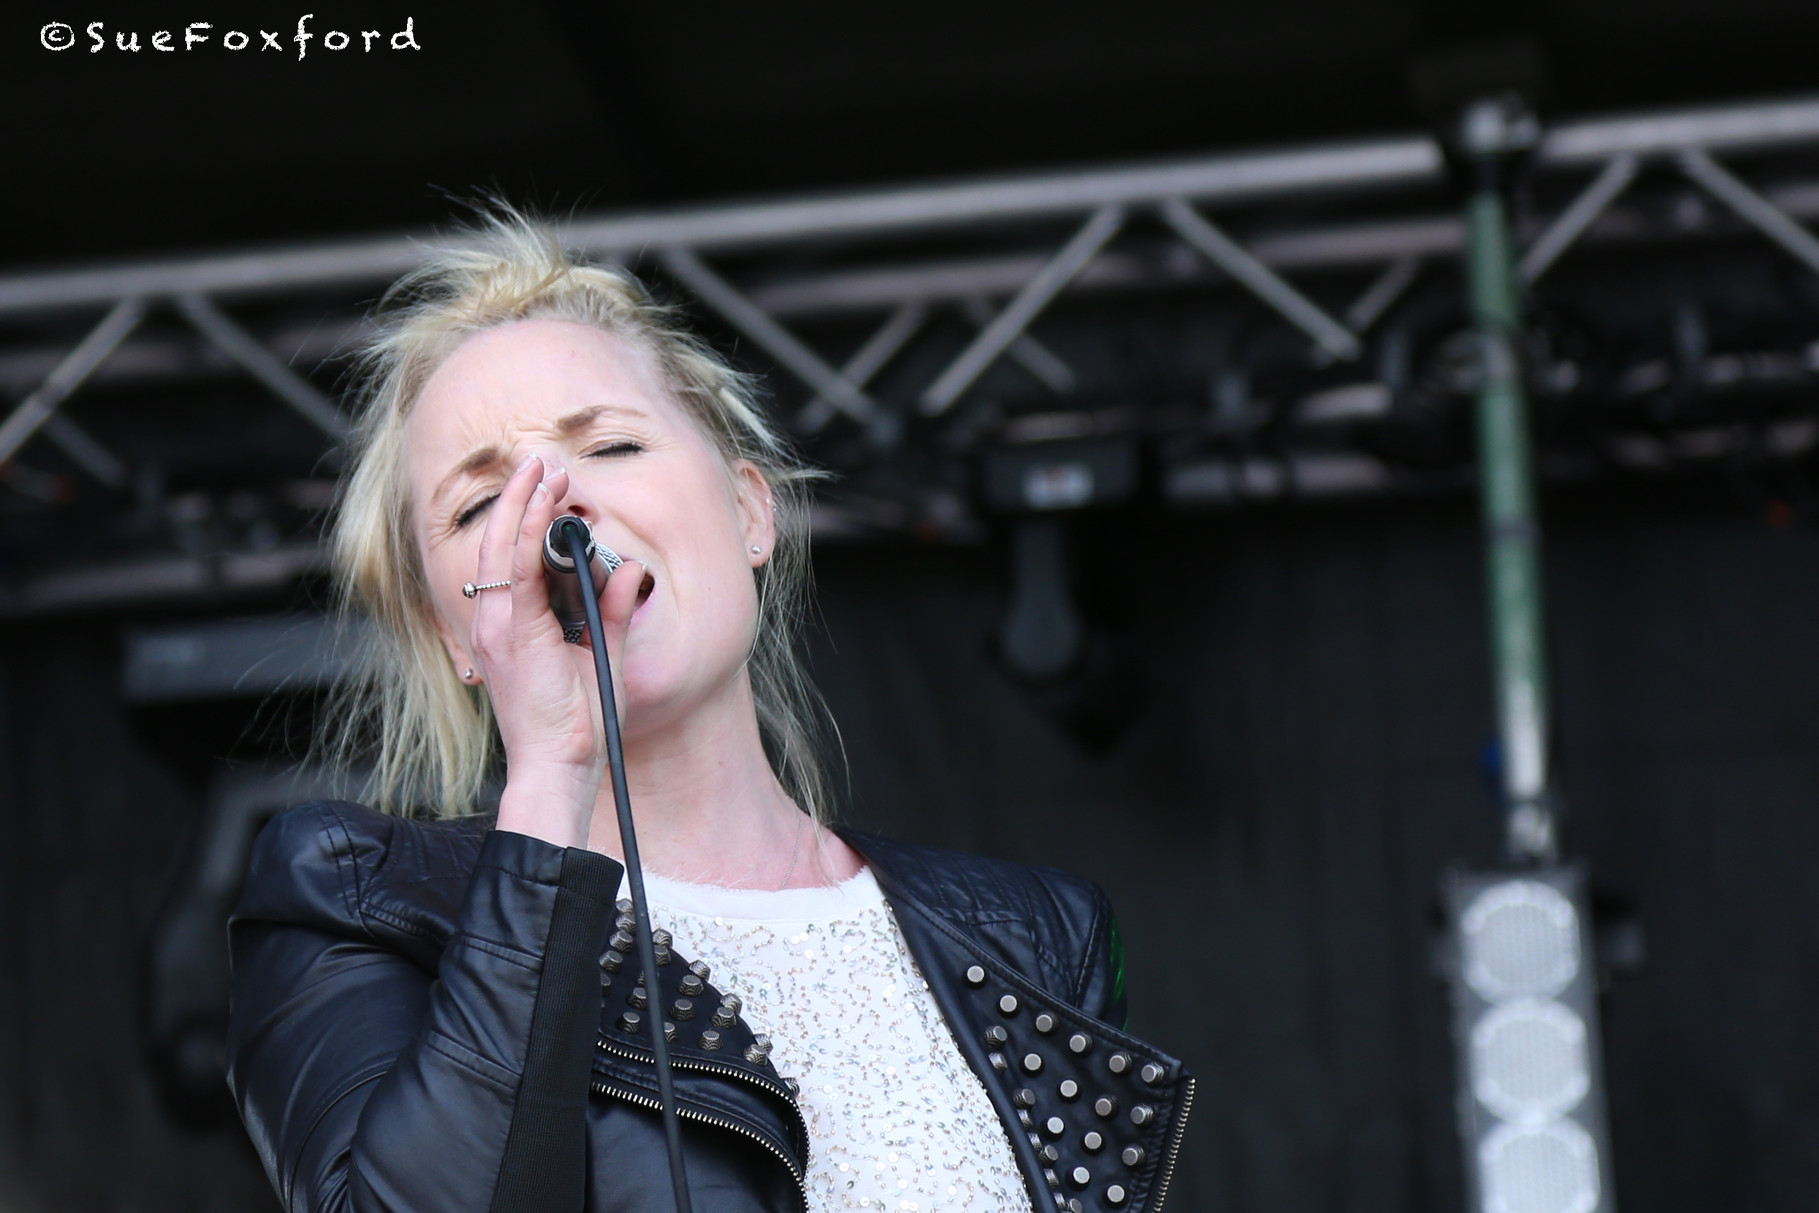 Kerry Ellis  - @SueFoxford